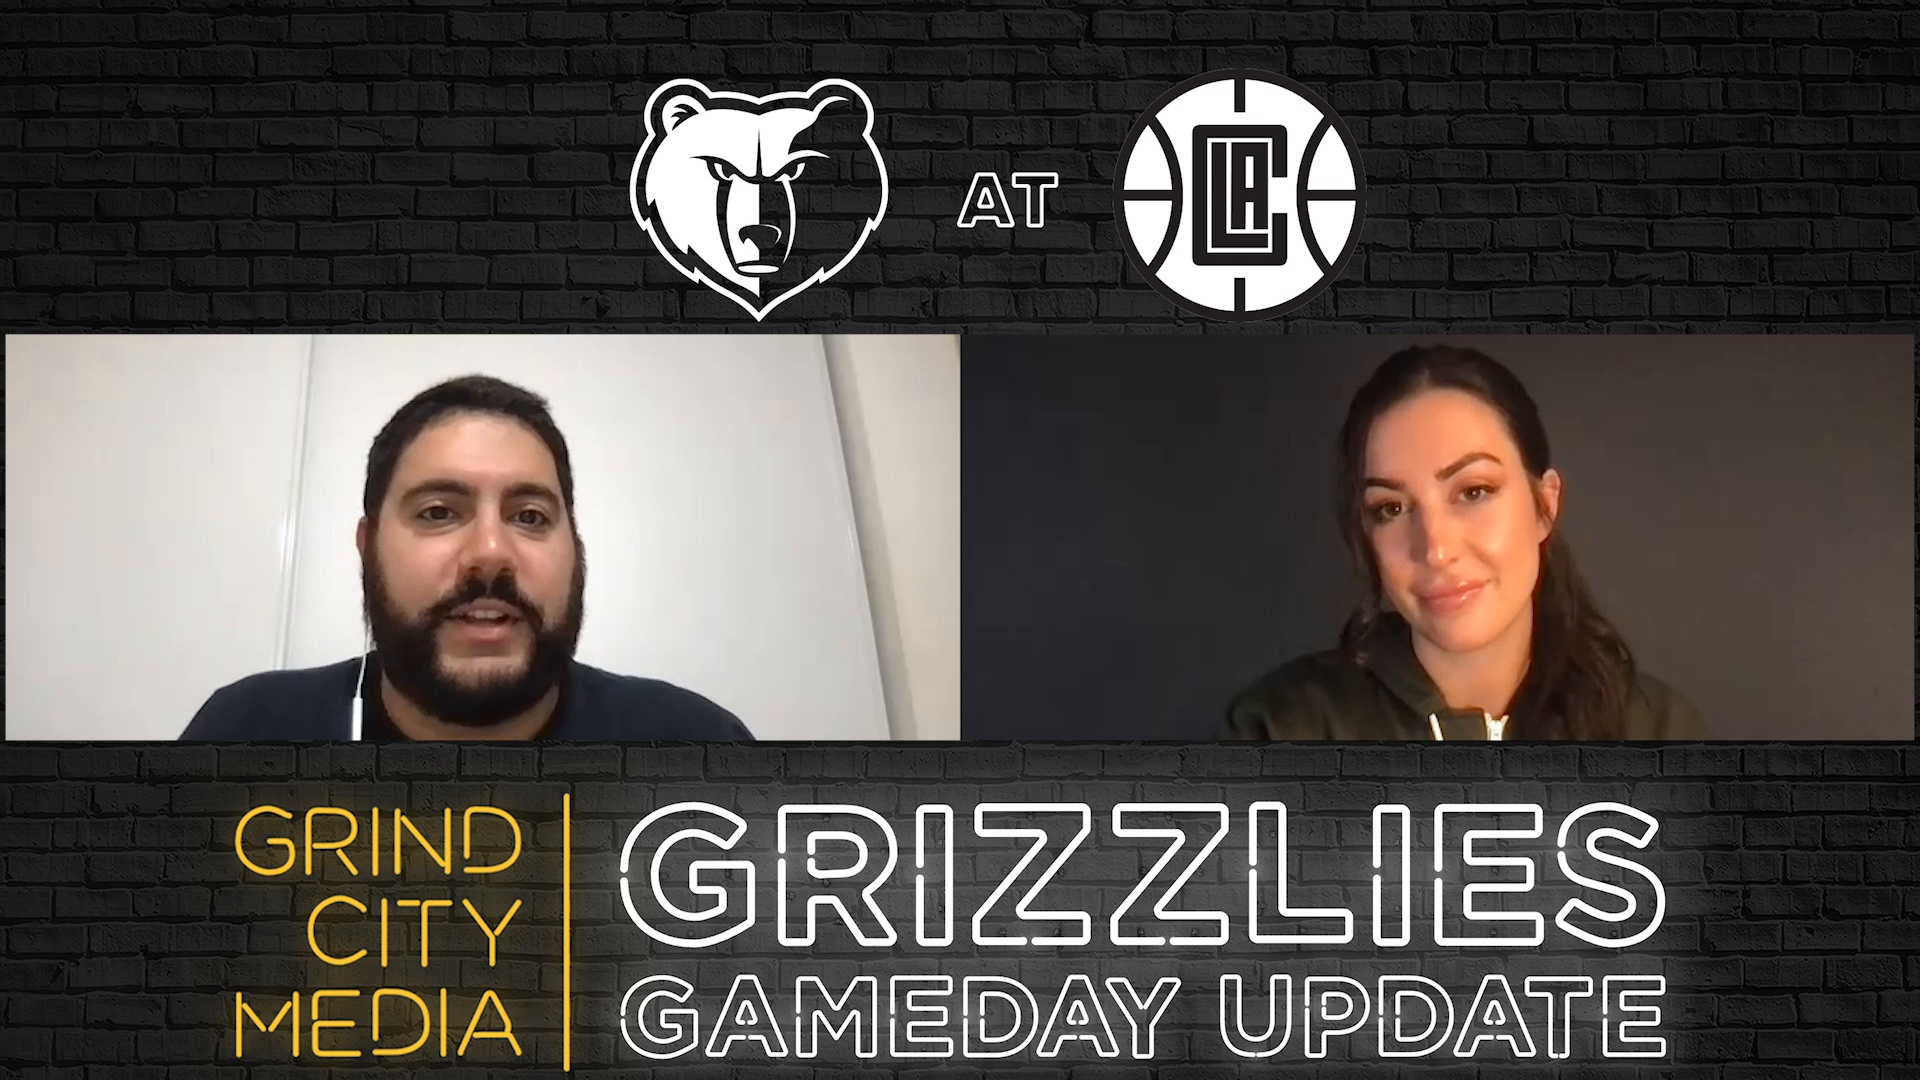 Gameday Update: Grizzlies vs Clippers 10.23.21